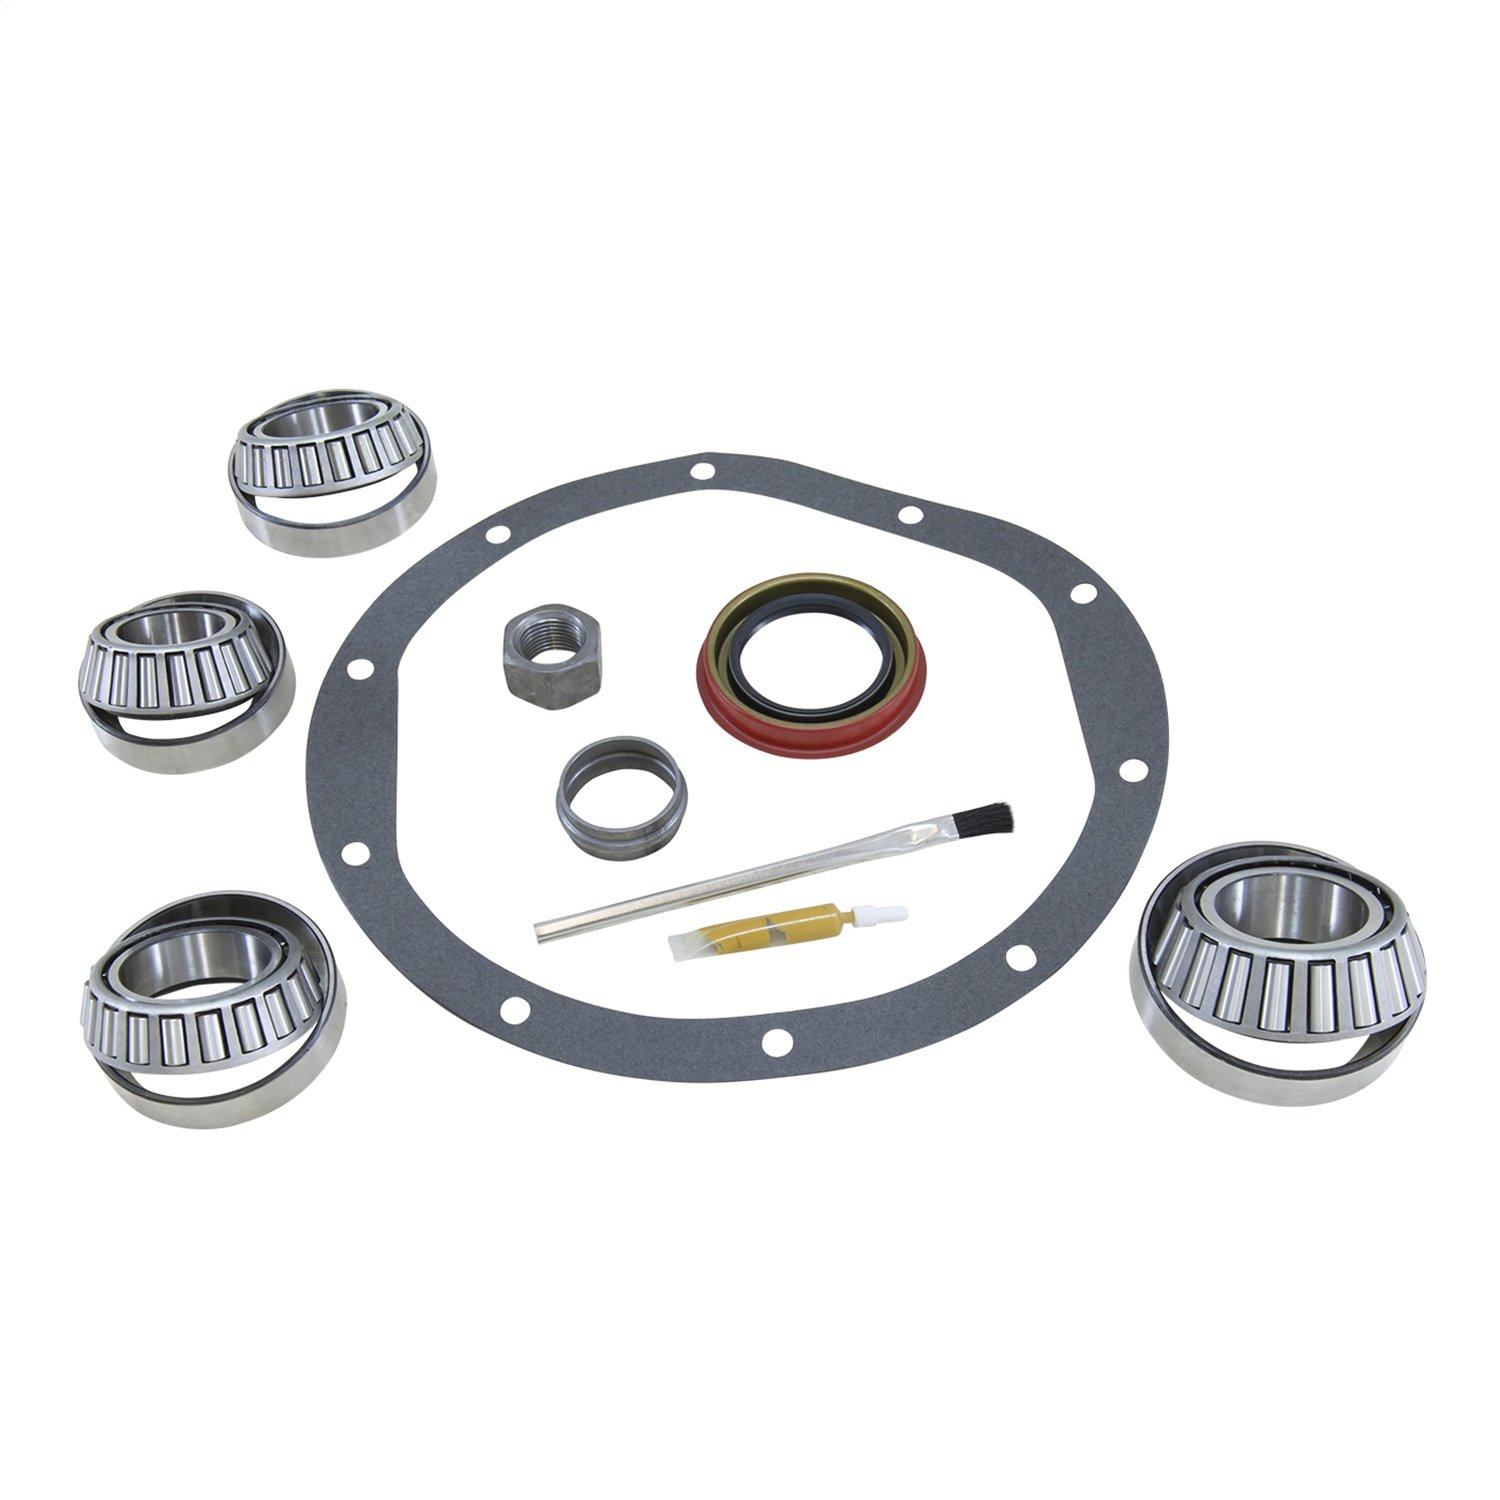 Yukon (BK GM8.5-F) Bearing Installation Kit for GM 8.5'' Front Differential